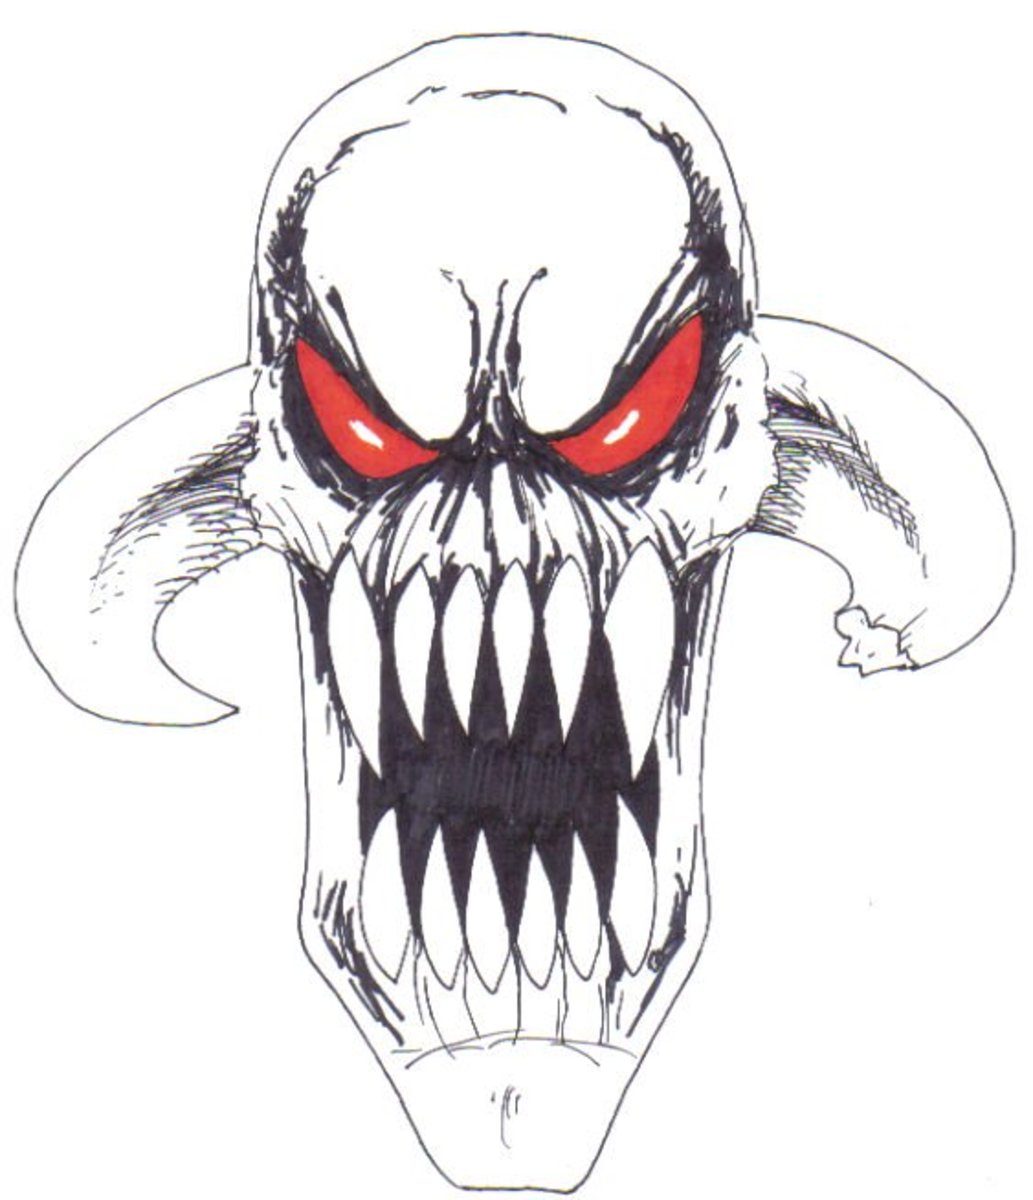 How To Draw A Demon - Unfinished Demon Art is Copyright Wayne Tully 2009.